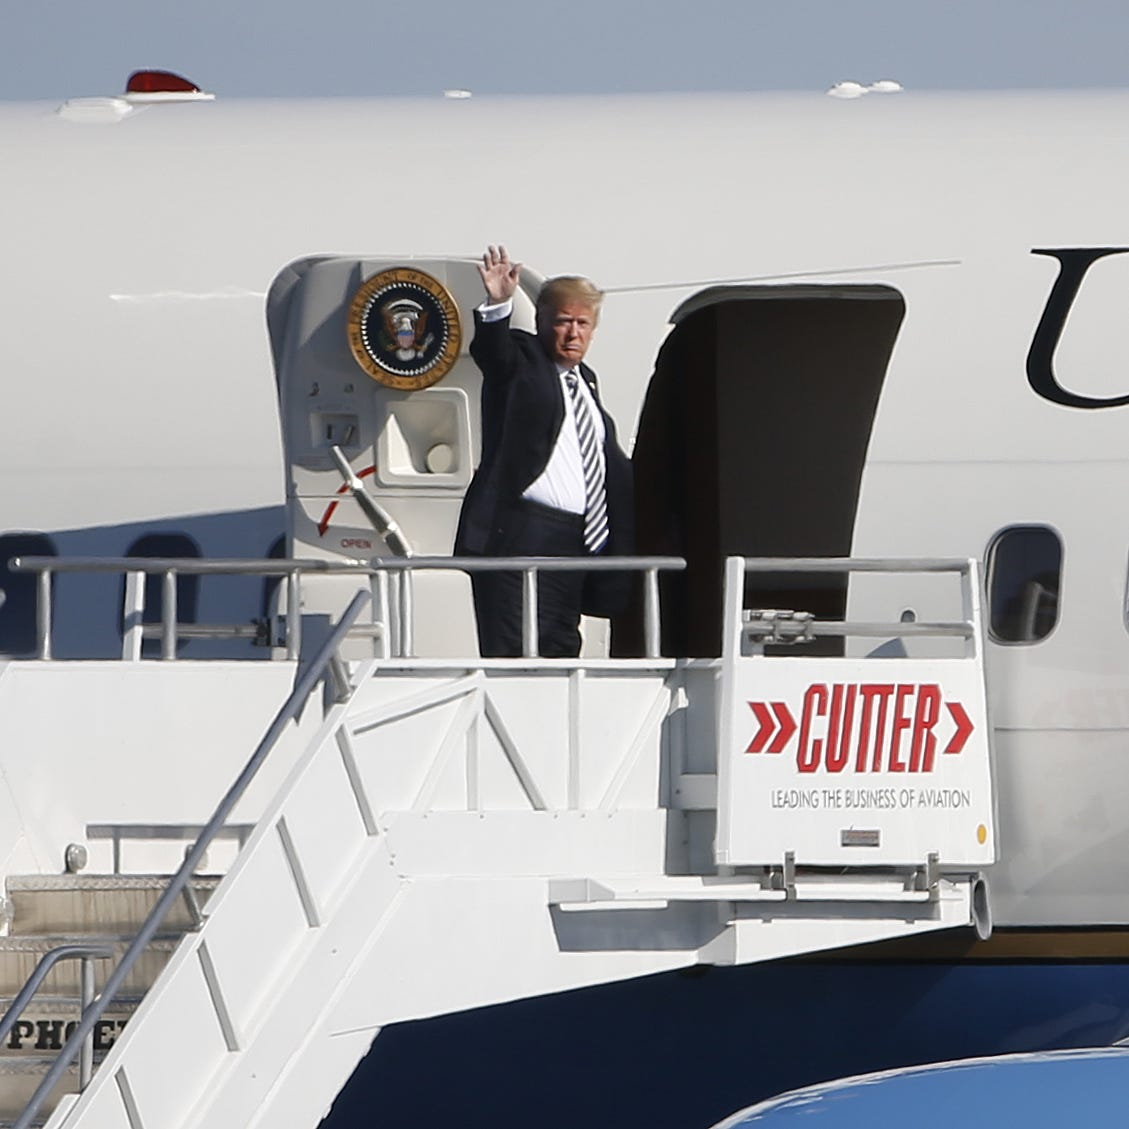 Trump leaves Arizona, heading to rally in Nevada